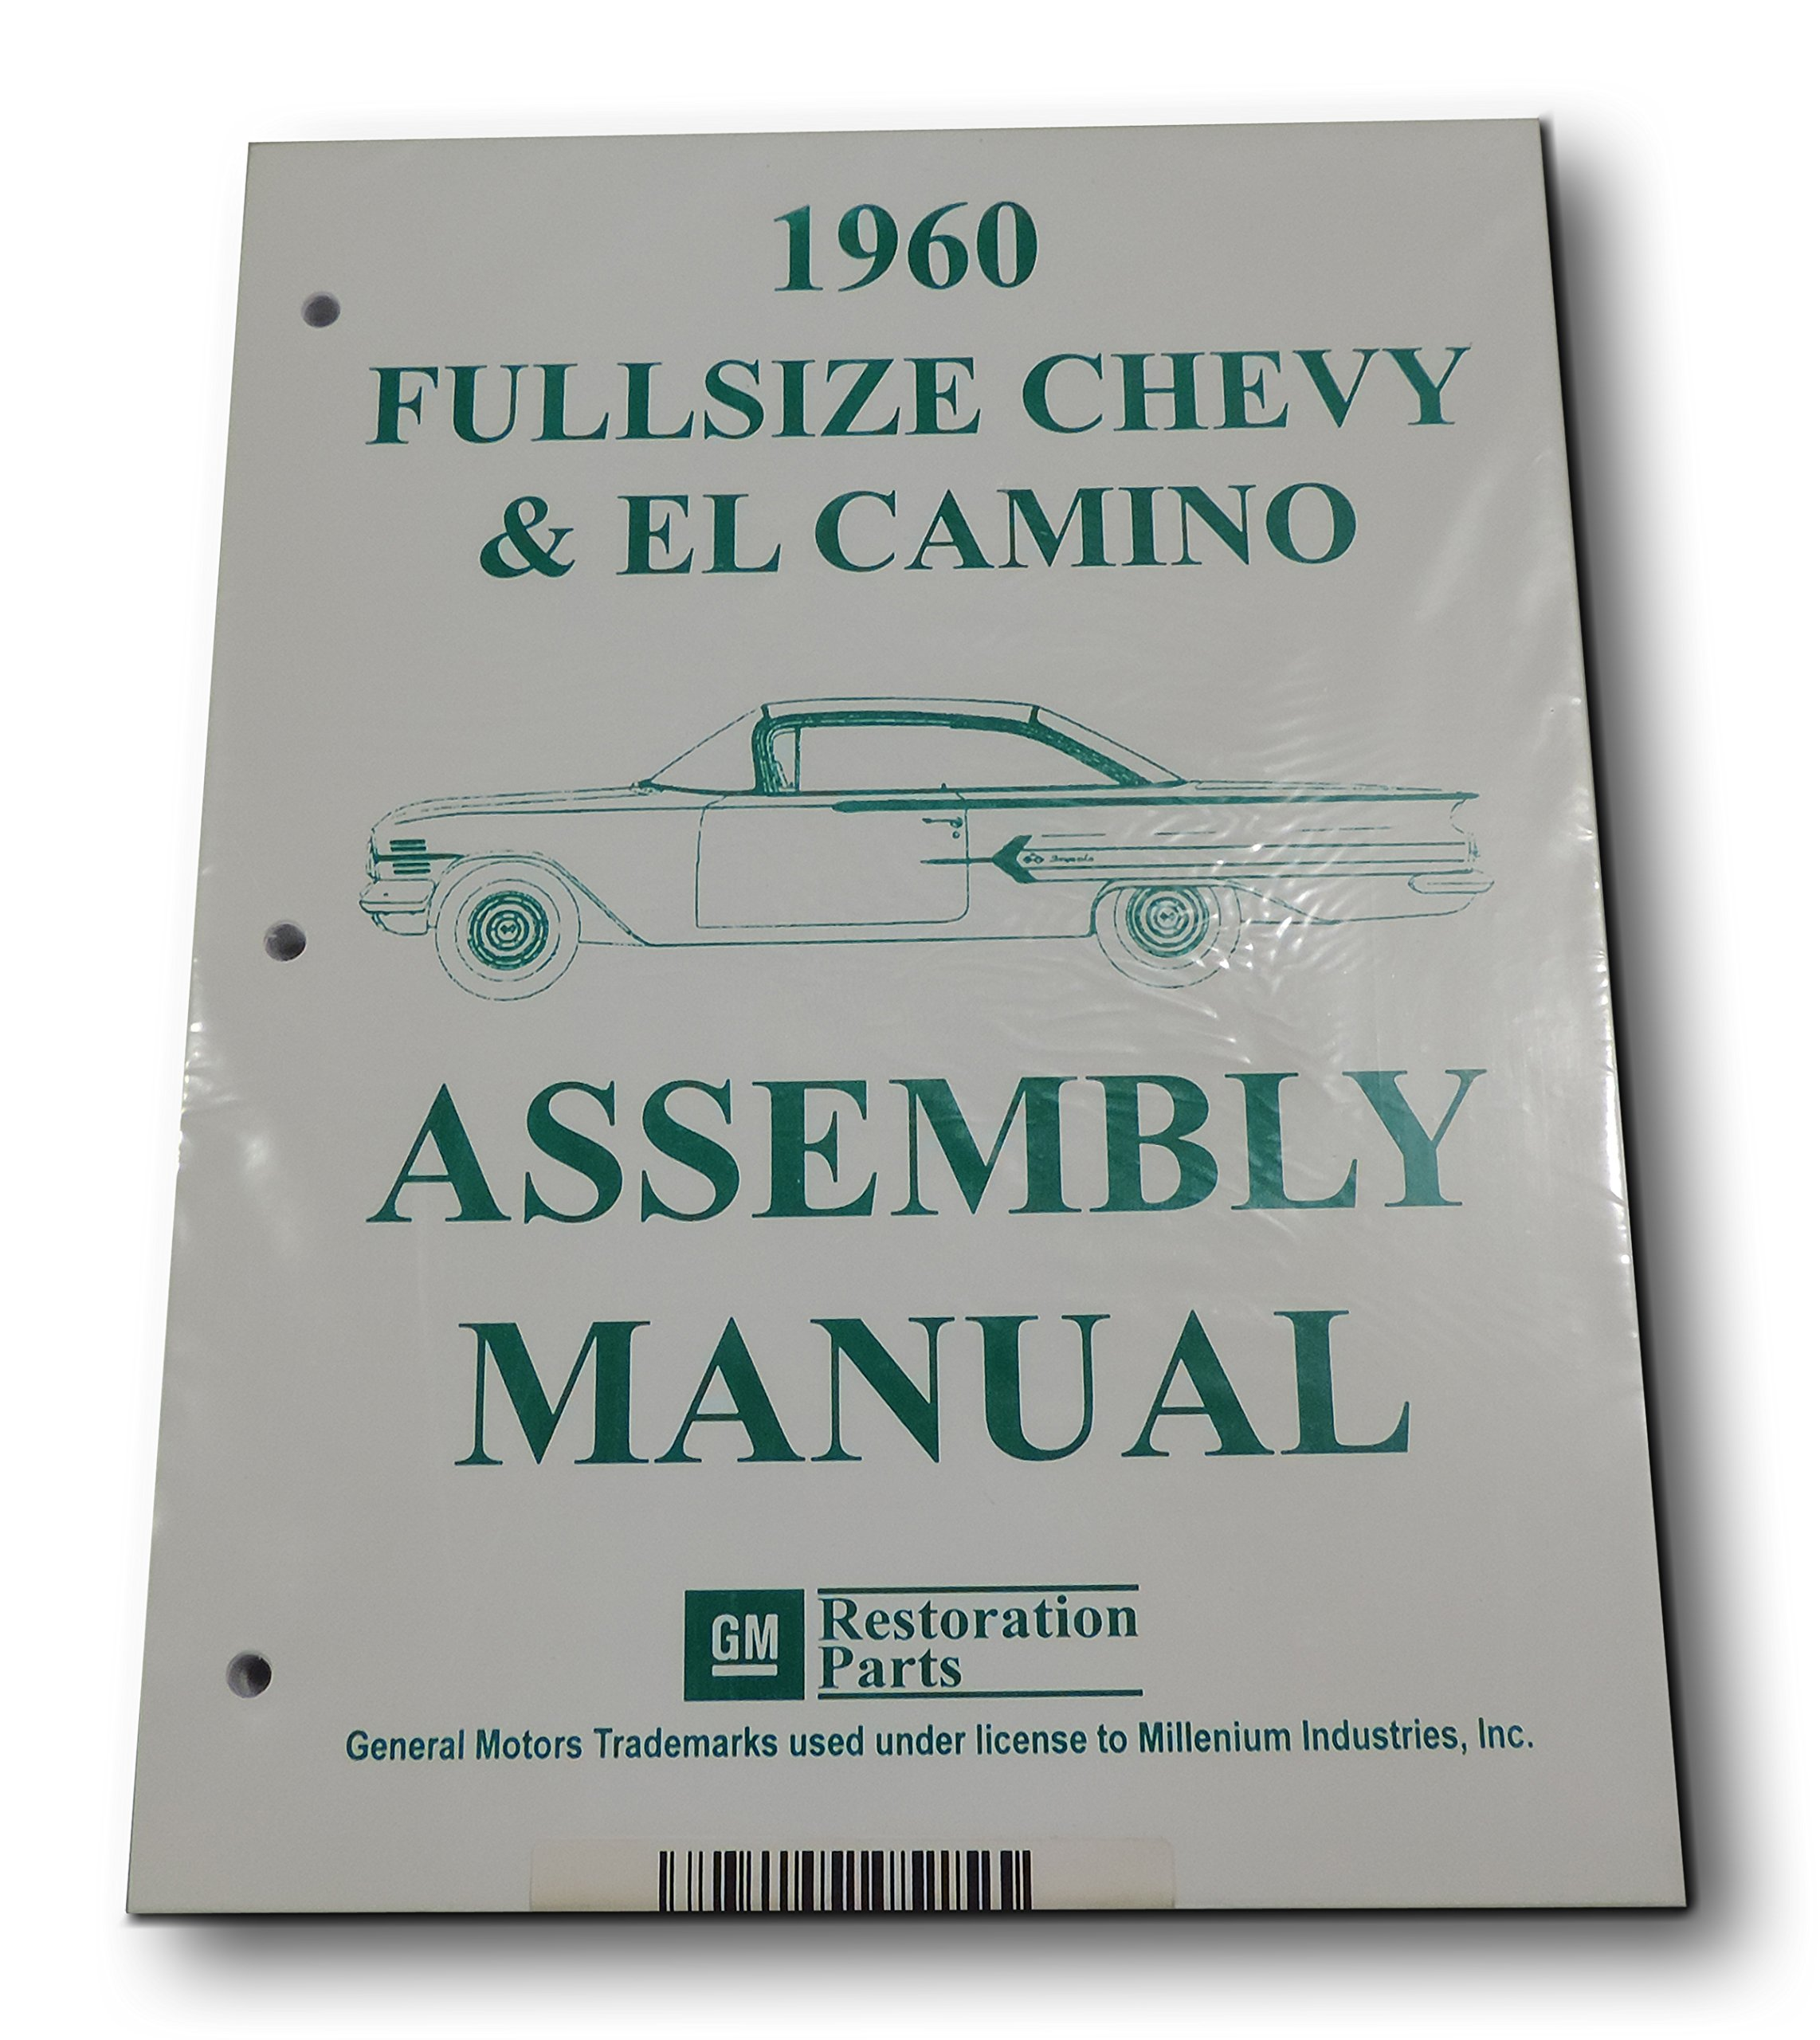 Inline Tube (I-2-15) Factory Assembly Manual for 1960 Full Sized Chevrolet Cars and El Camino